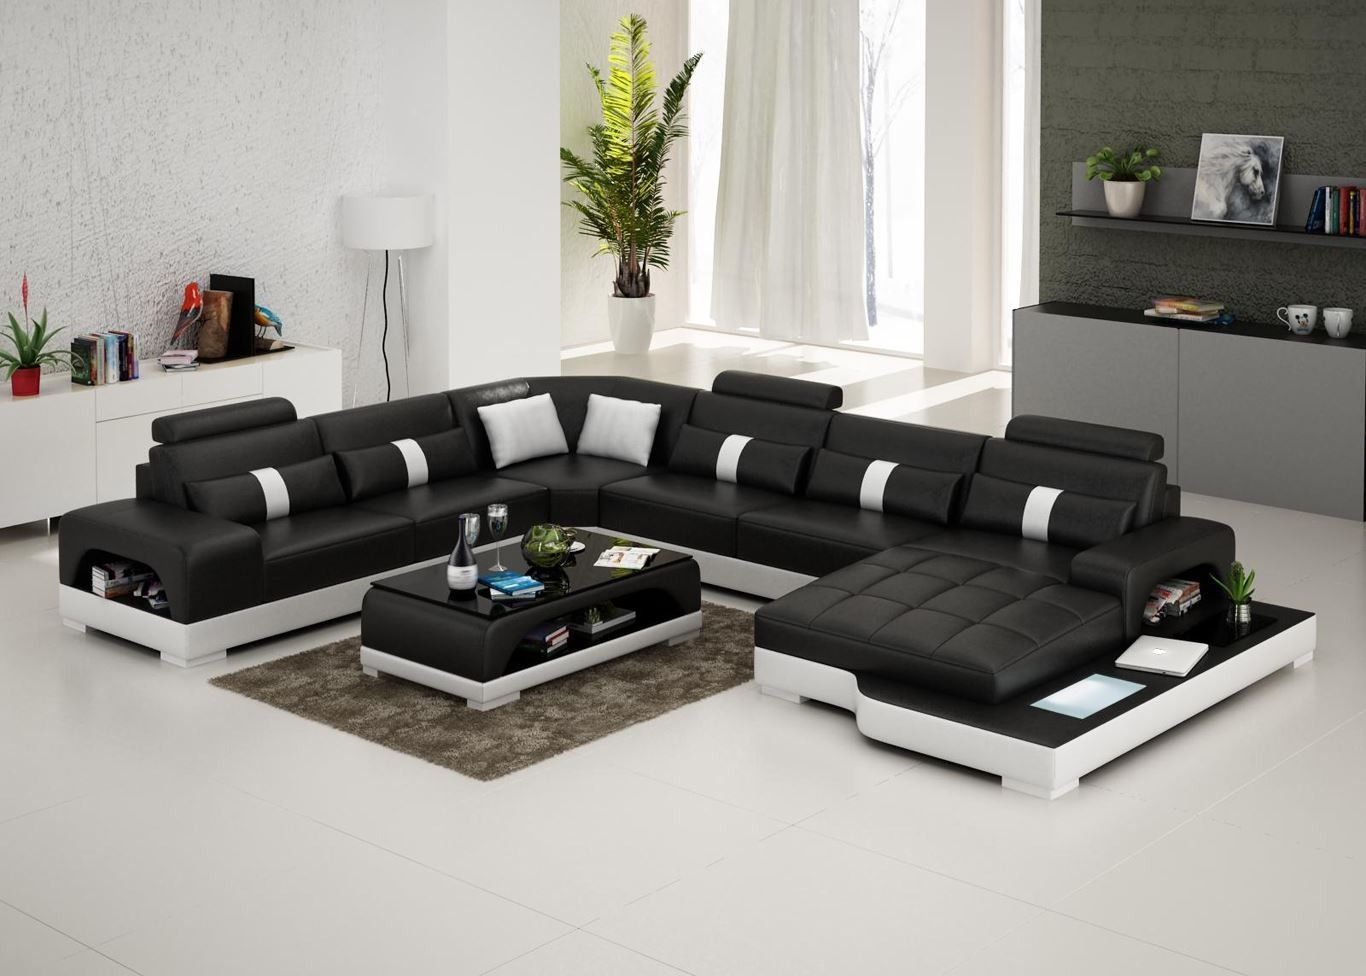 100 Modern Sectional Sofas And Couch That You Will Love Living